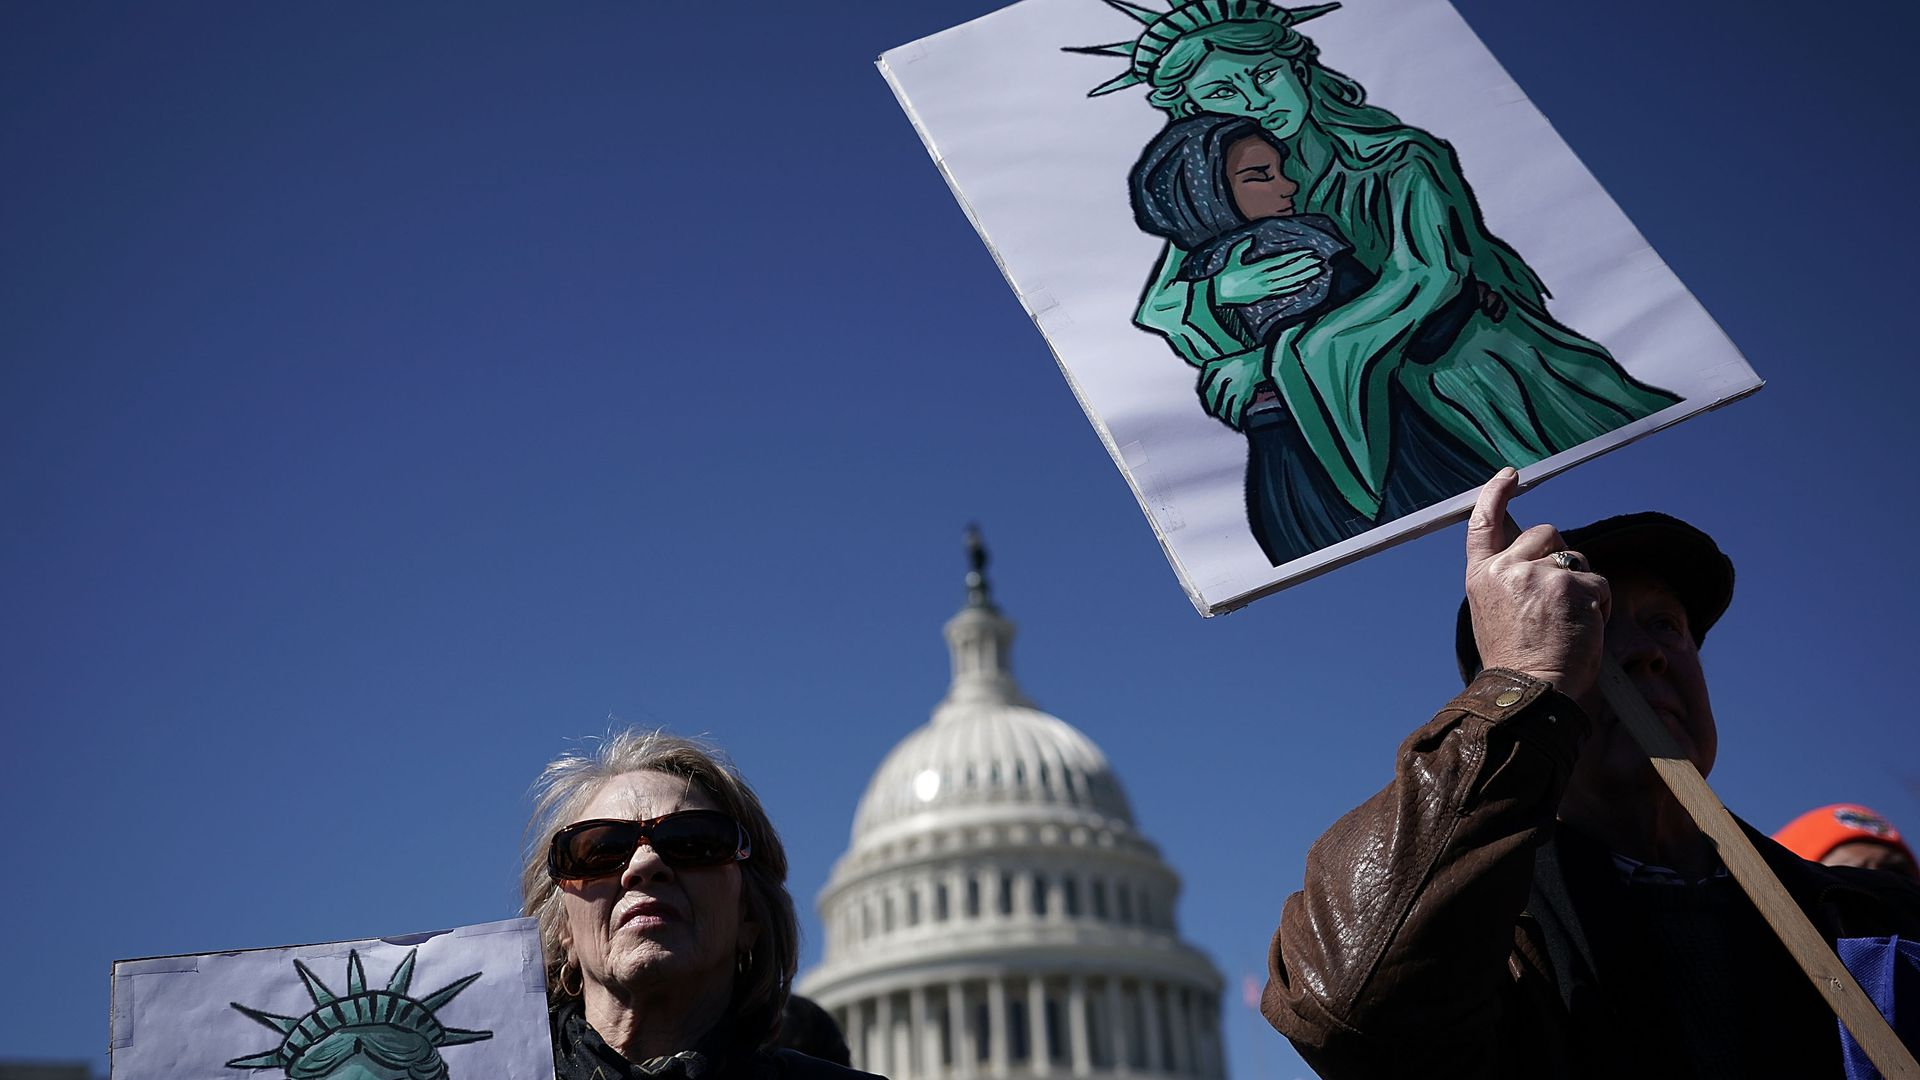 Two protestors holding signs of the statue of liberty hugging a woman with a hijab. The capitol building is in the background.